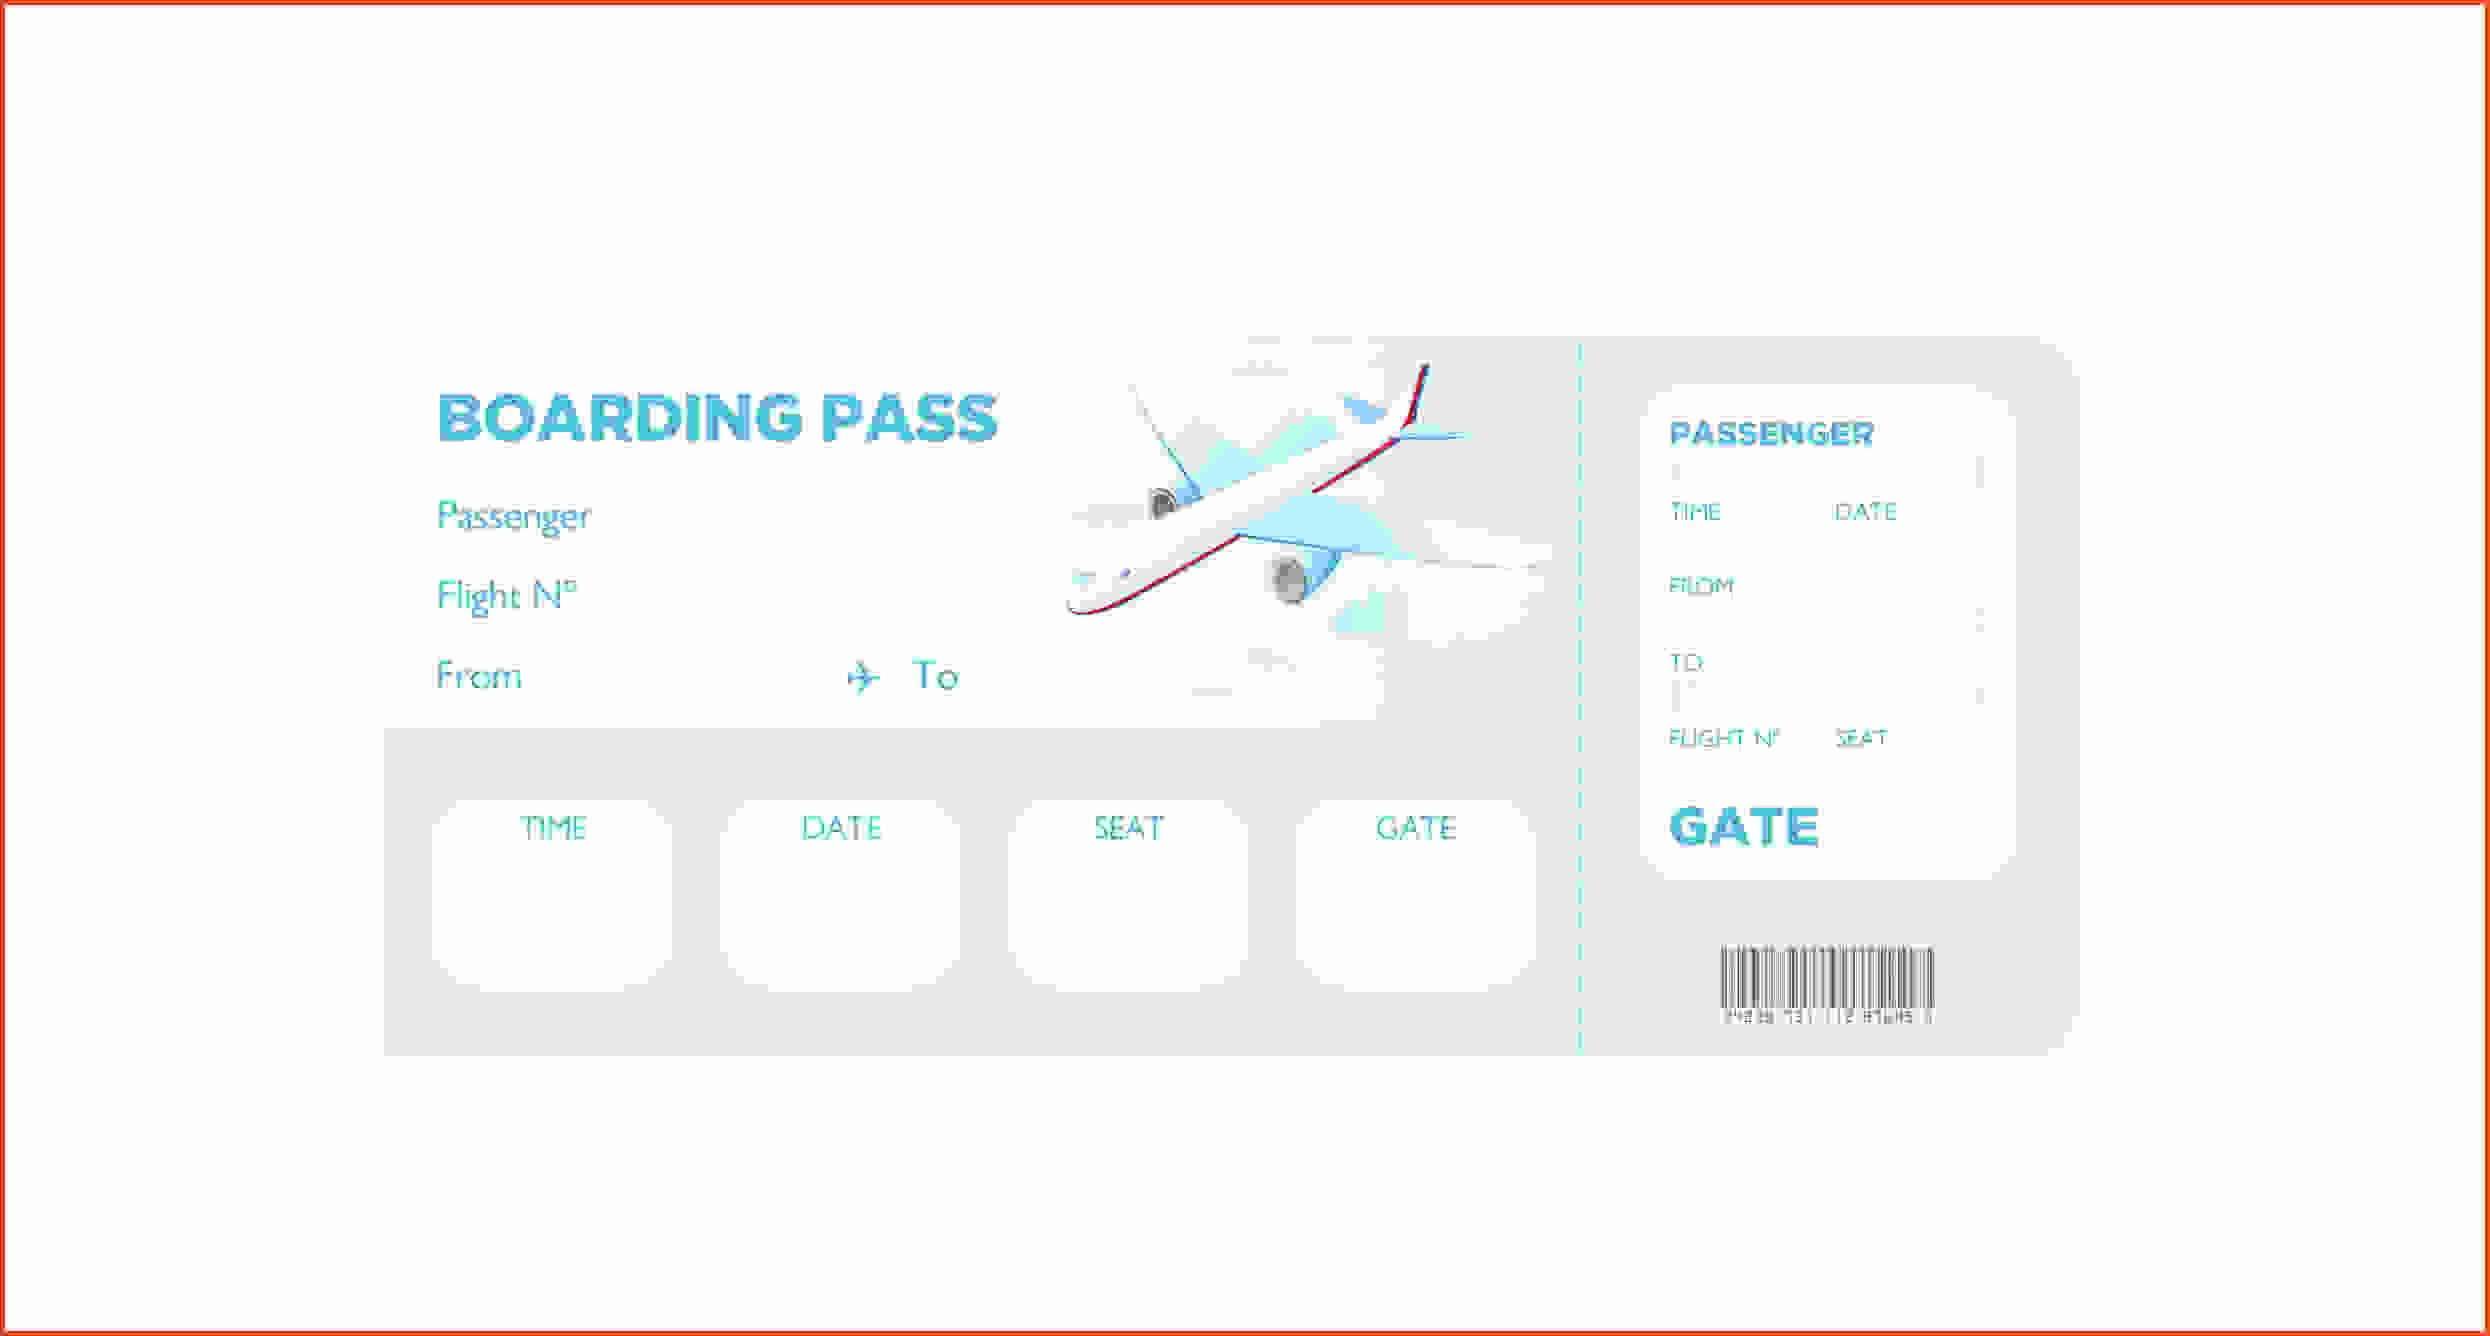 Boarding Pass Template Free New Boarding Pass Template